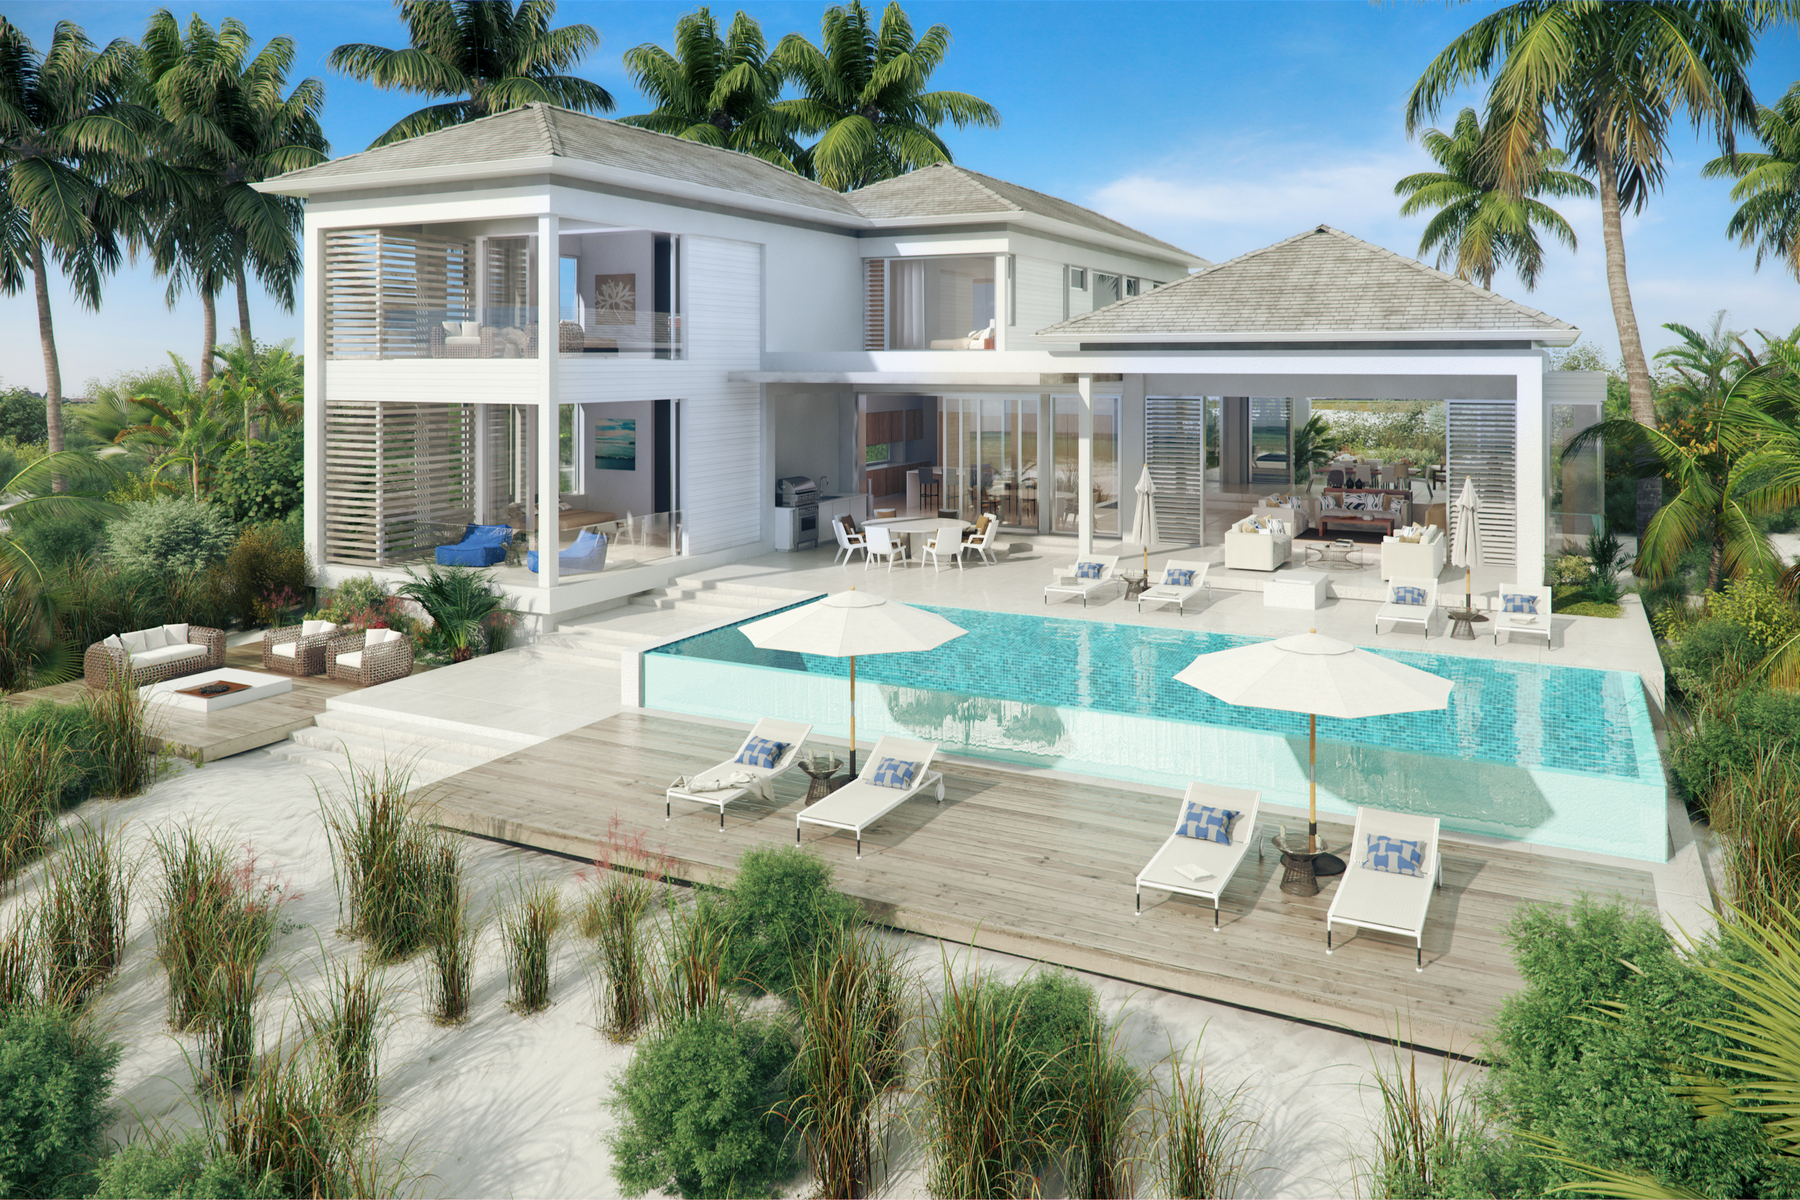 Single Family Home for Sale at BEACH ENCLAVE GRACE BAY Design A Beachfront Grace Bay, TCI Turks And Caicos Islands